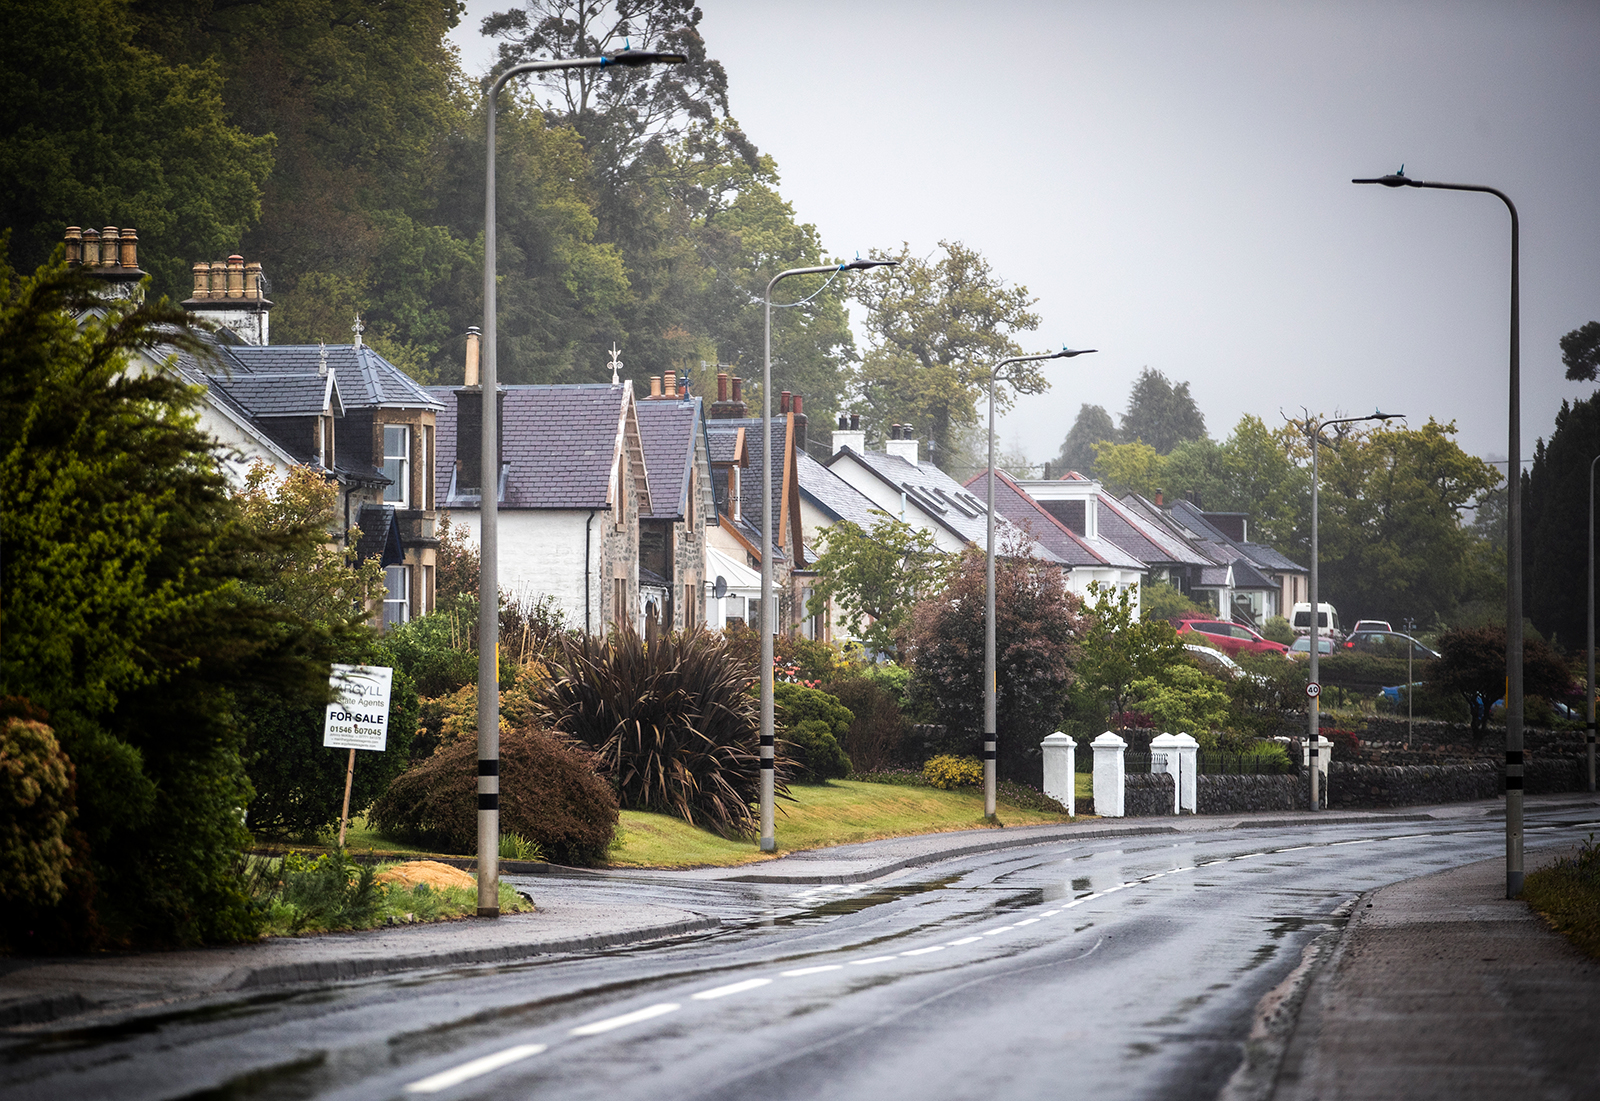 Homes in the village of Minard in Argyll and Bute, Scotland on Monday, May 18.